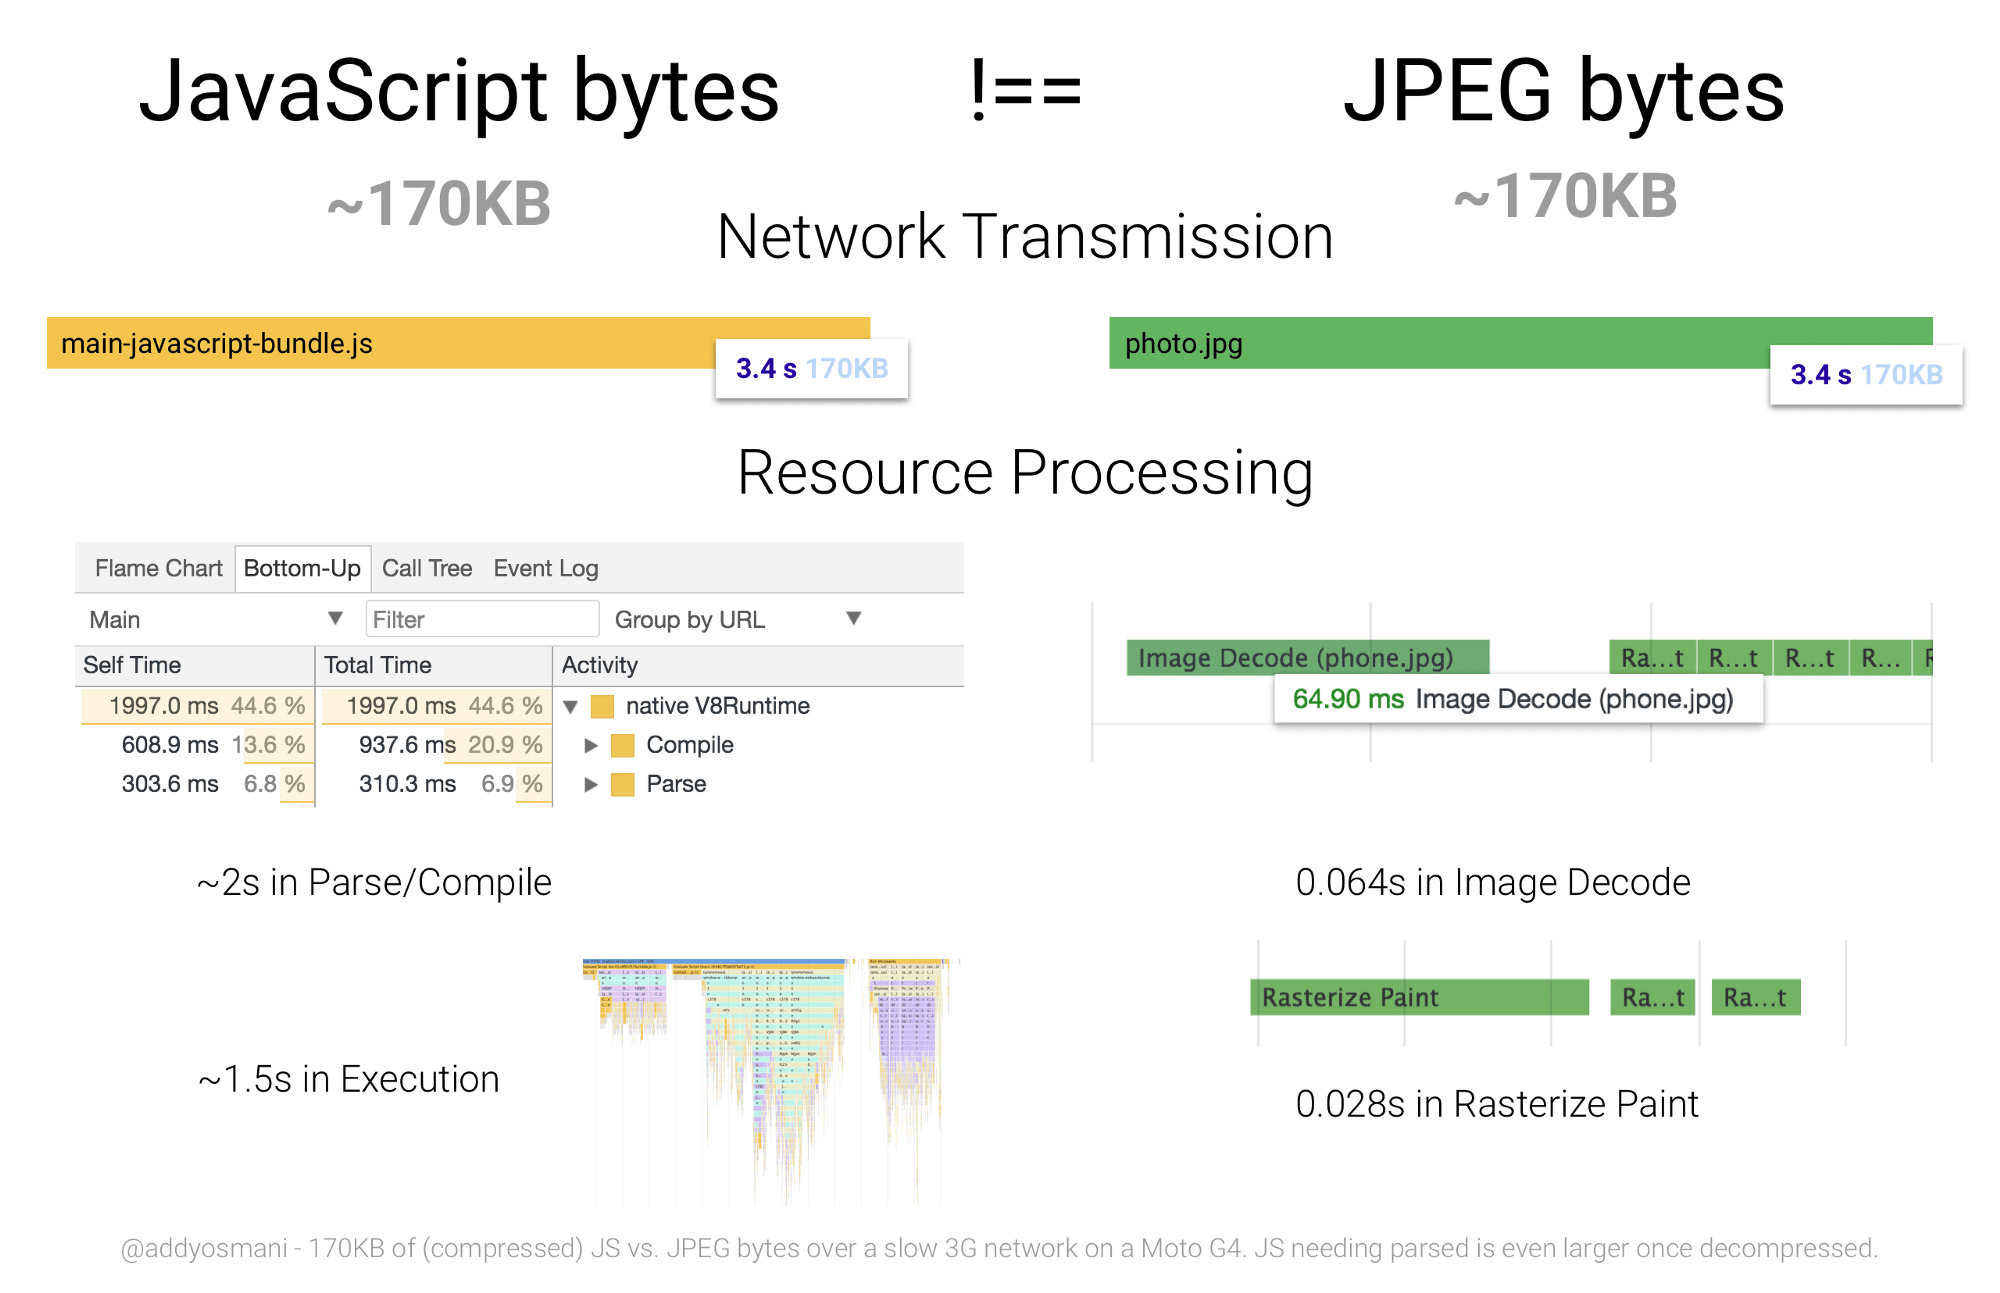 3.5 seconds to process 170 KB of JS and 0.1 second for 170 KB of JPEG